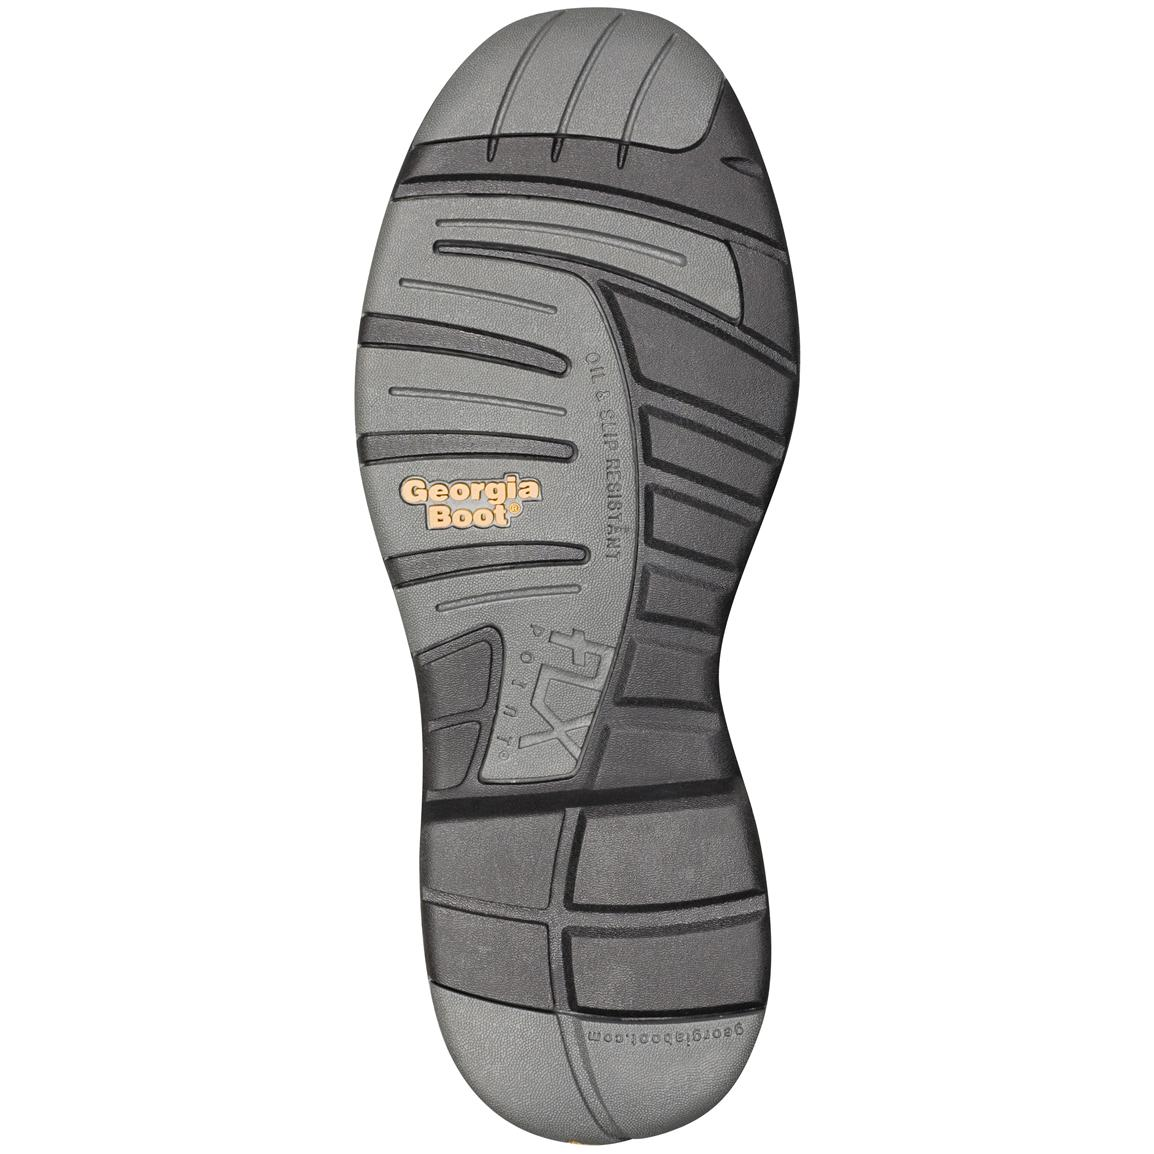 Dual-density PU and rubber outsole